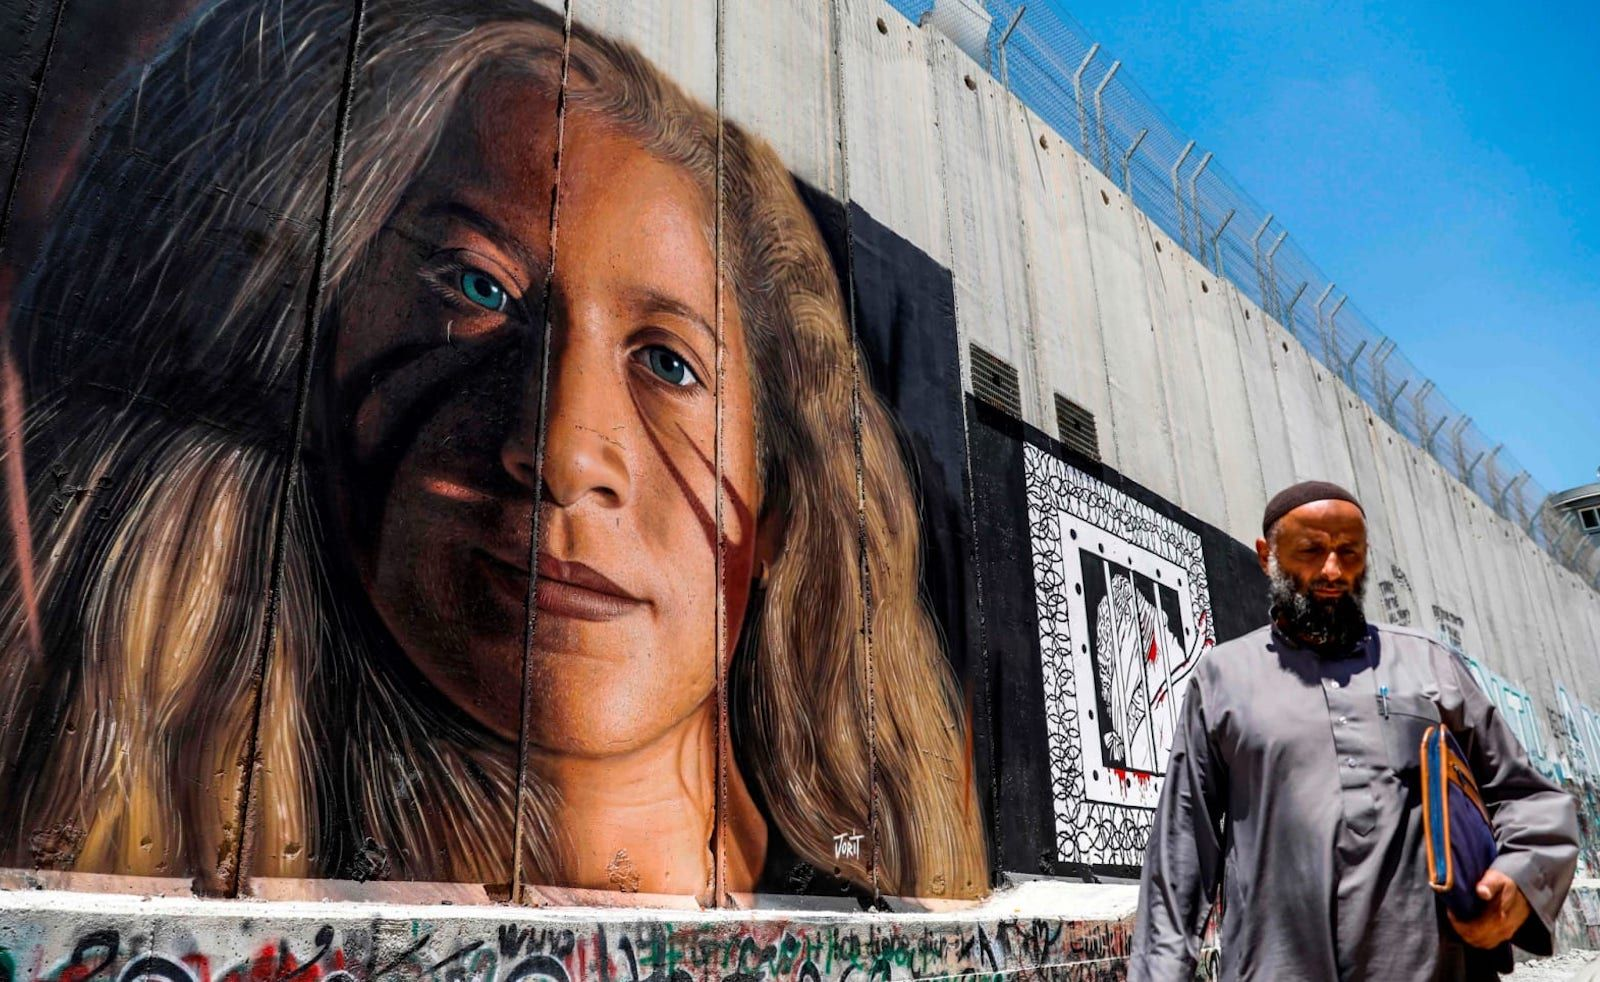 Palestinian activist Ahed Tamimi   West Bank Wall   Palestinian Christians